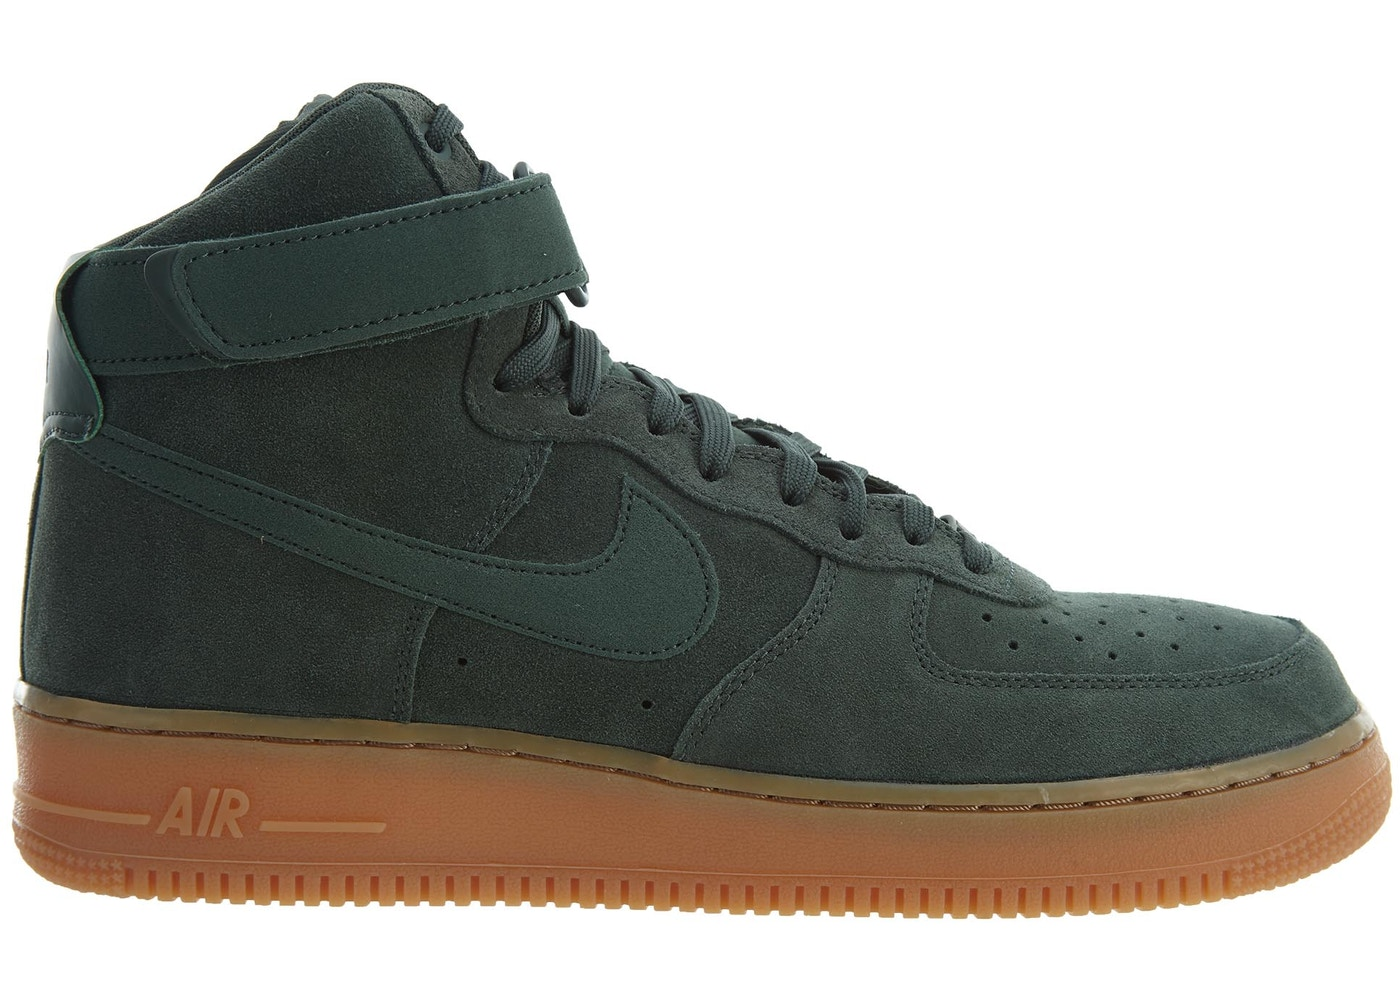 new concept 0b950 b3f9f Nike Air Force 1 High 07 Lv8 Suede Vintage Green/Vintage Green